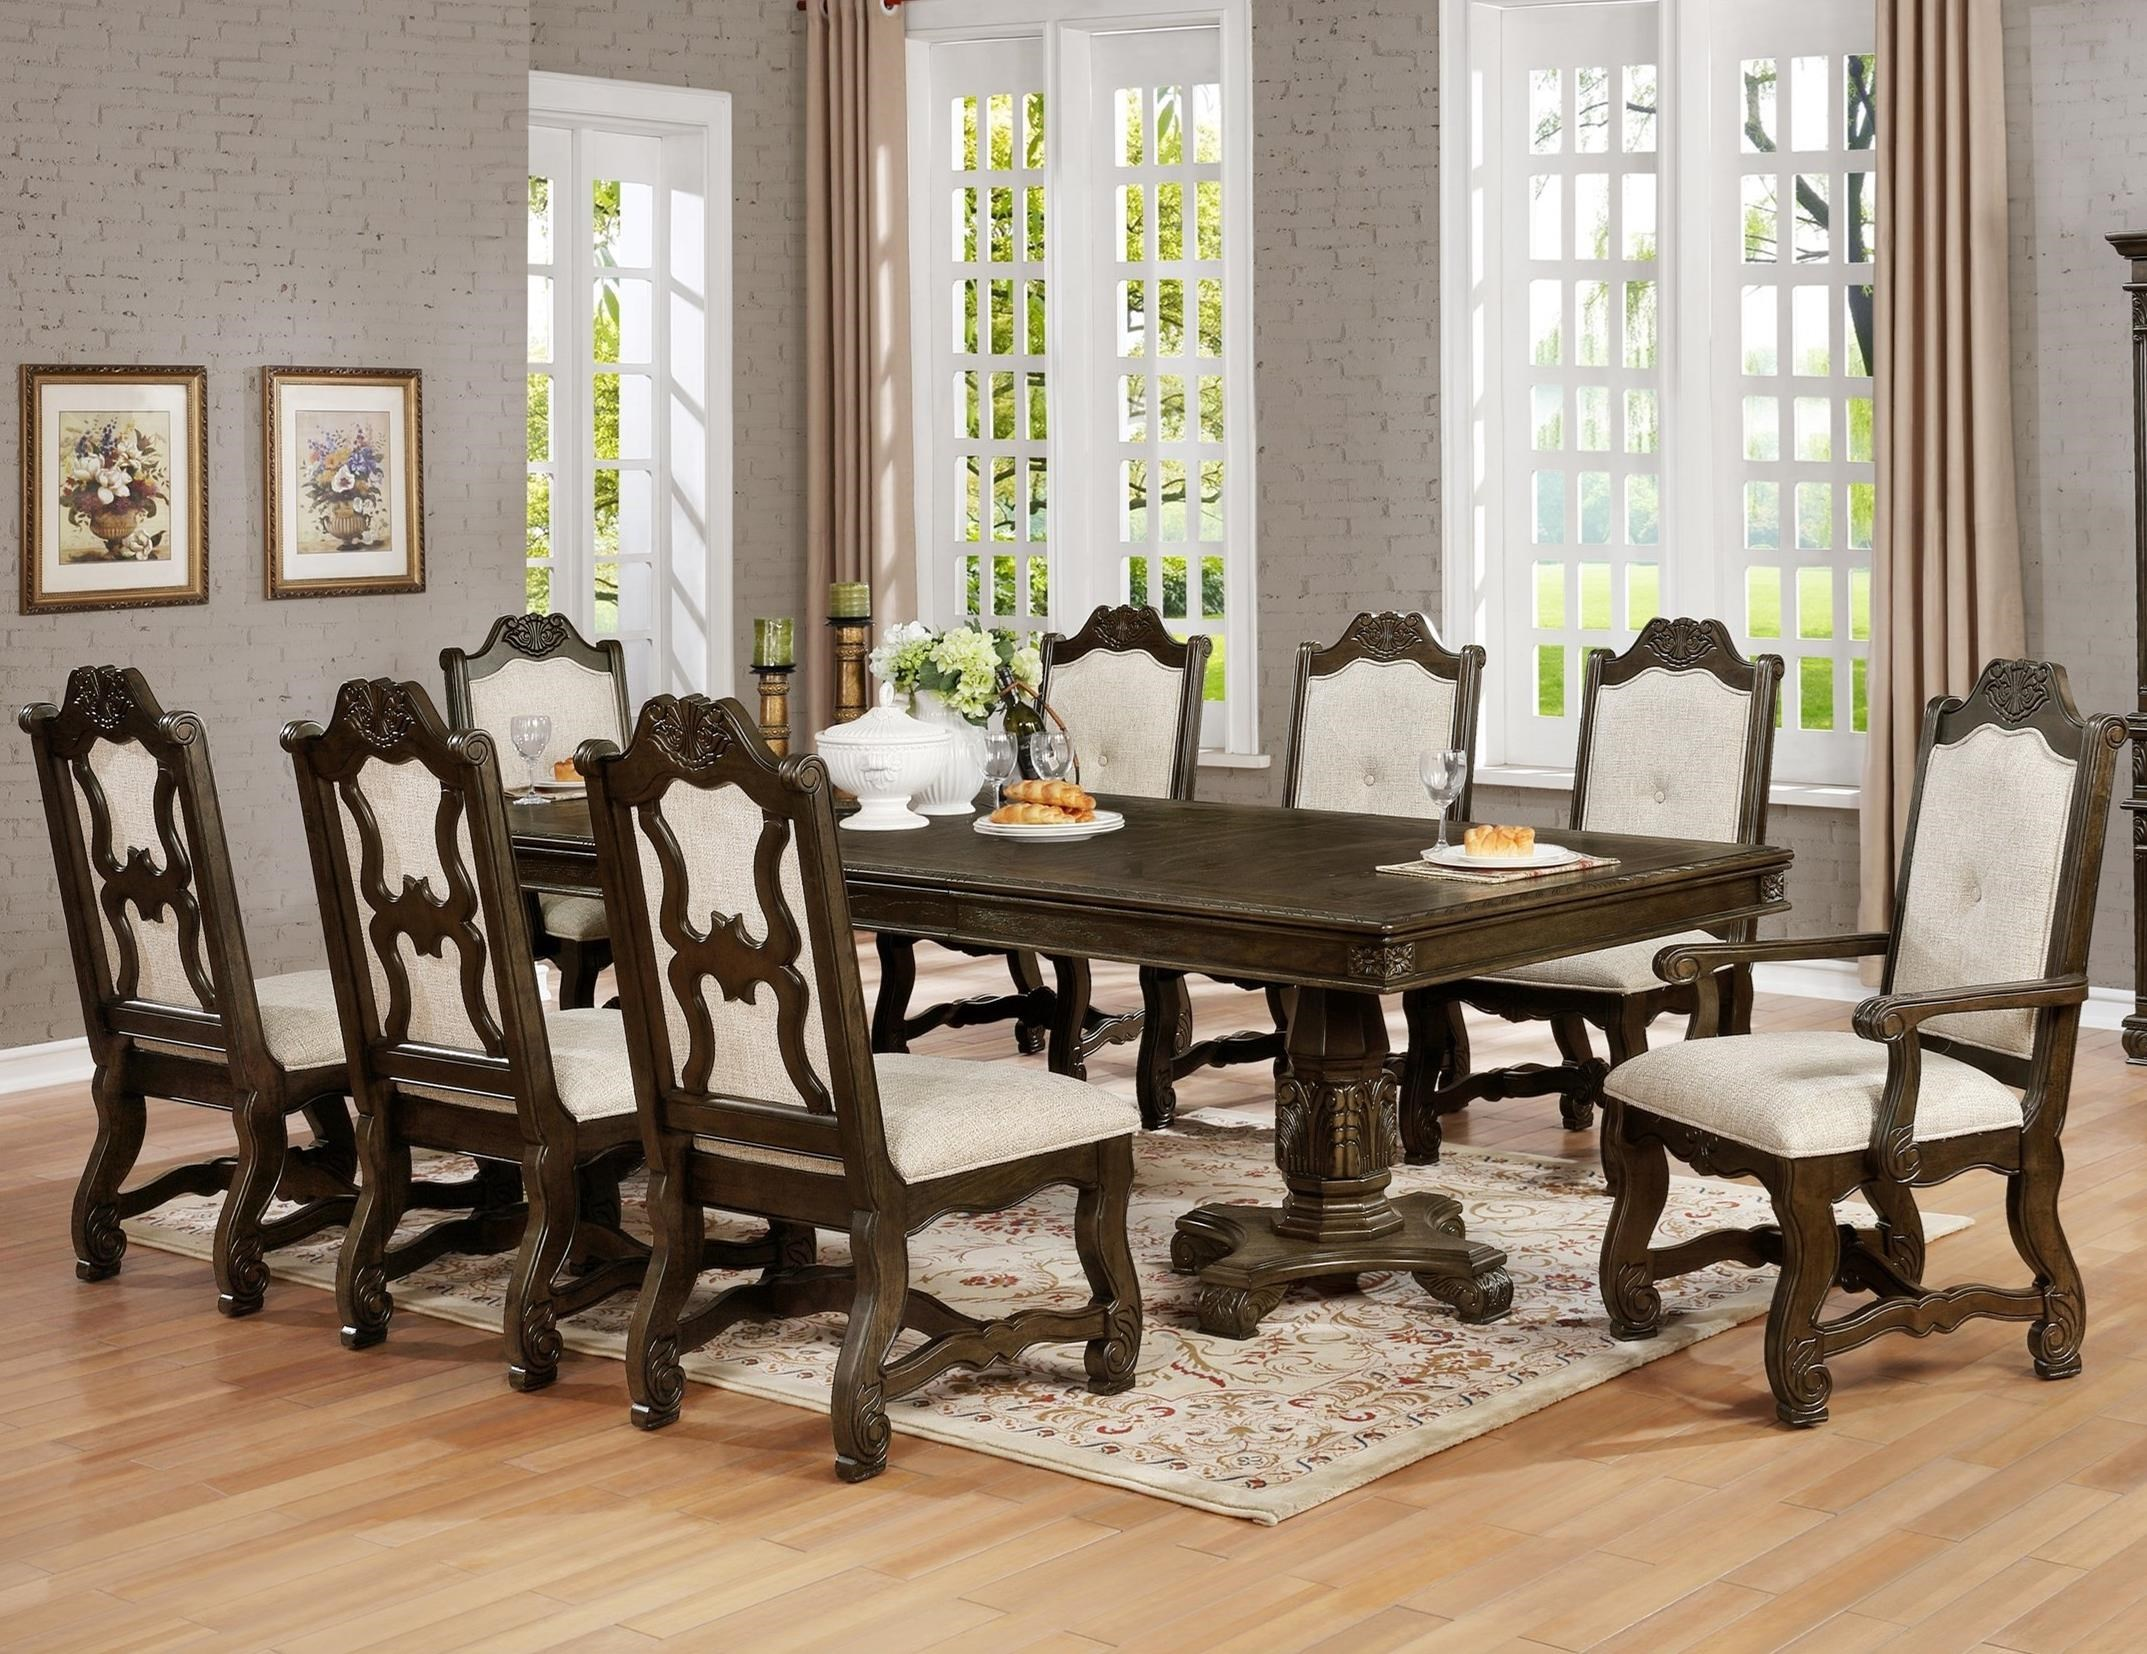 Charmant Pierre Traditional Nine Piece Dining Set With Pedestal Table And Two  Extension Leaves By Crown Mark